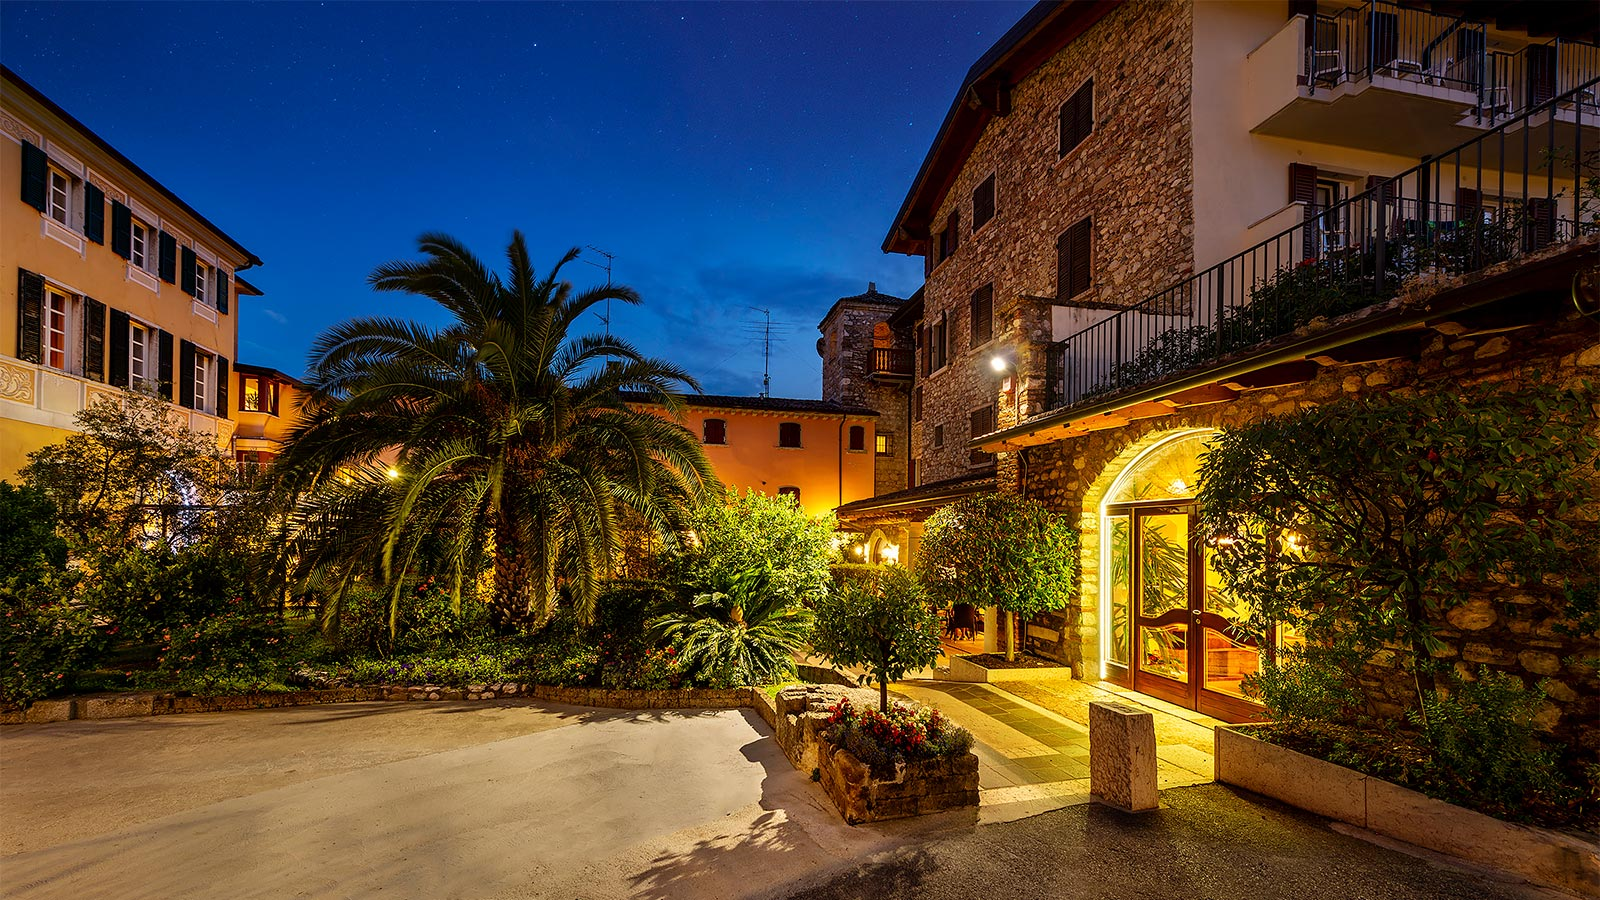 Beautiful starry night at Hotel Toscolano Maderno